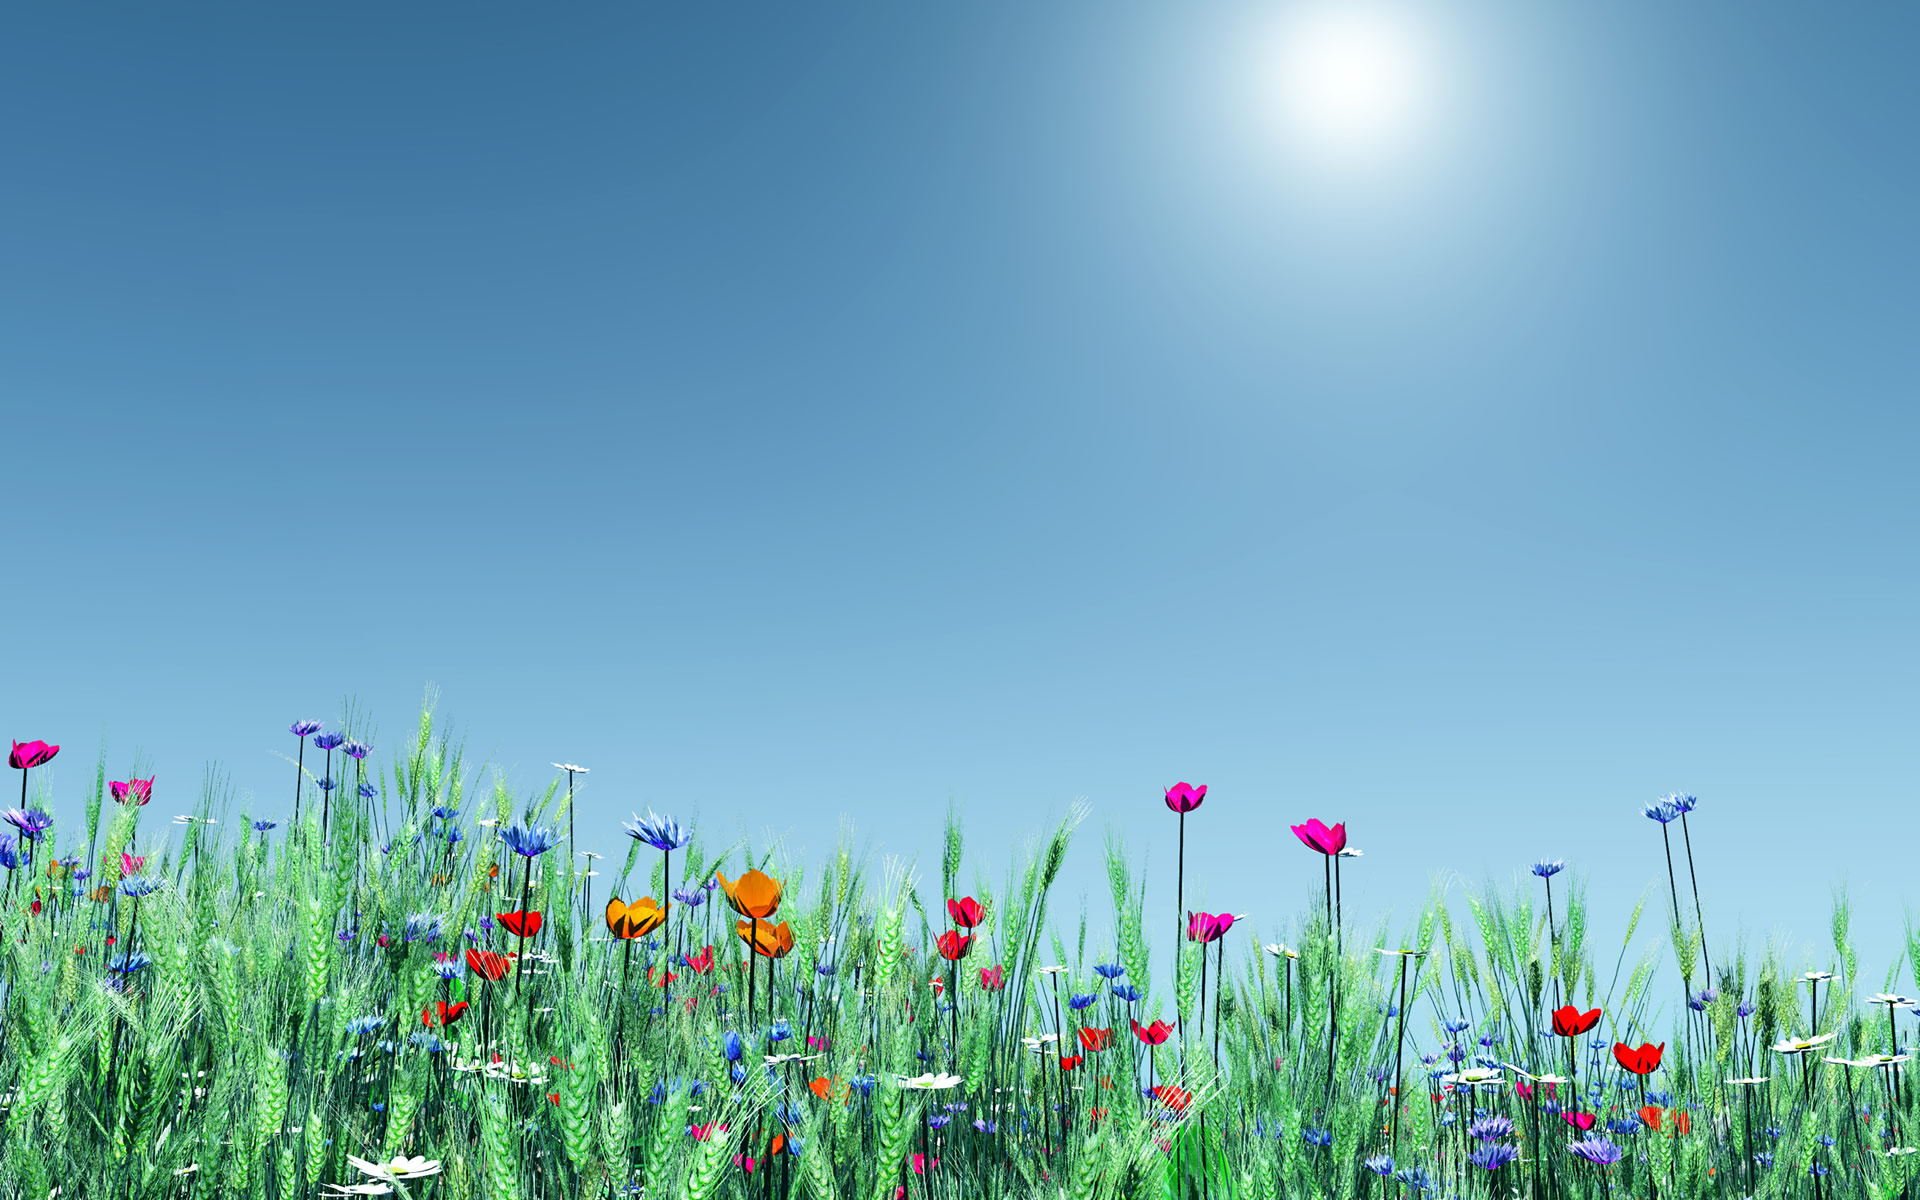 Spring Flowers Wallpaper 15